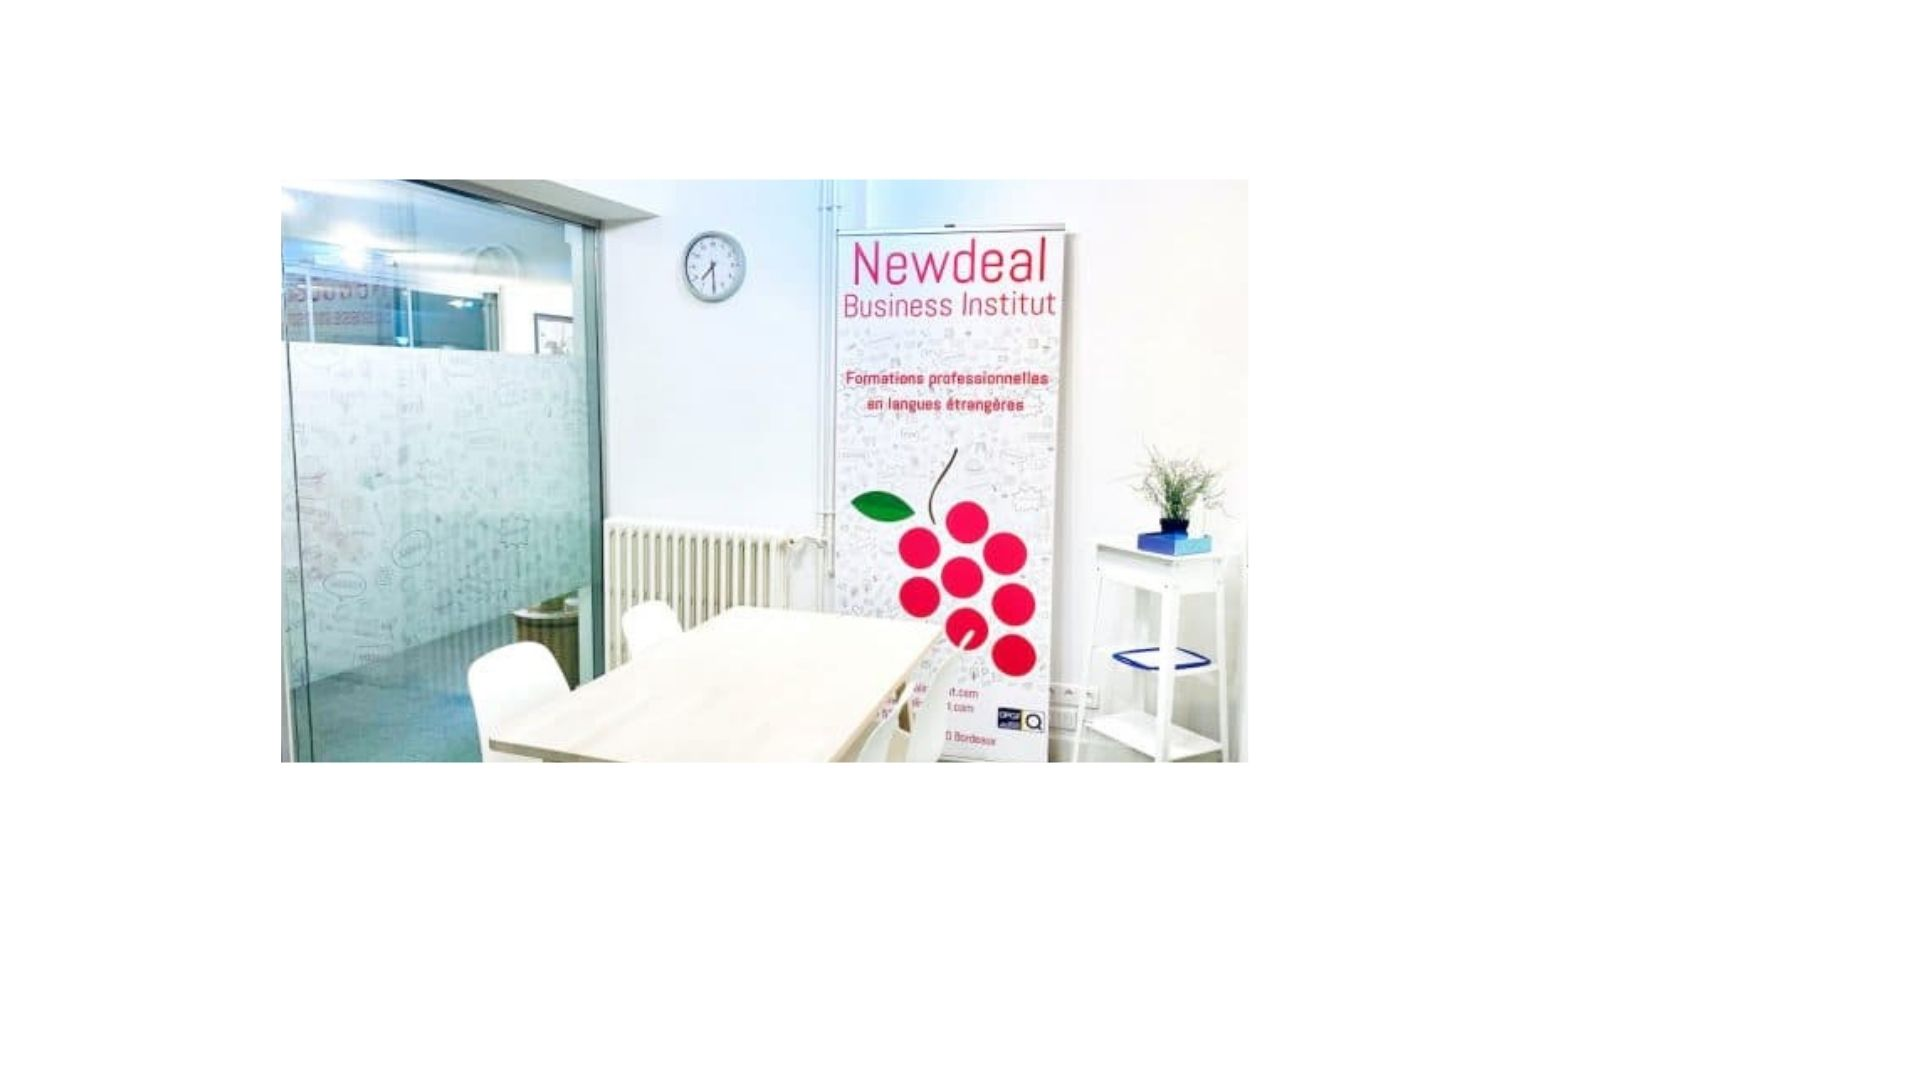 Newdeal business institut